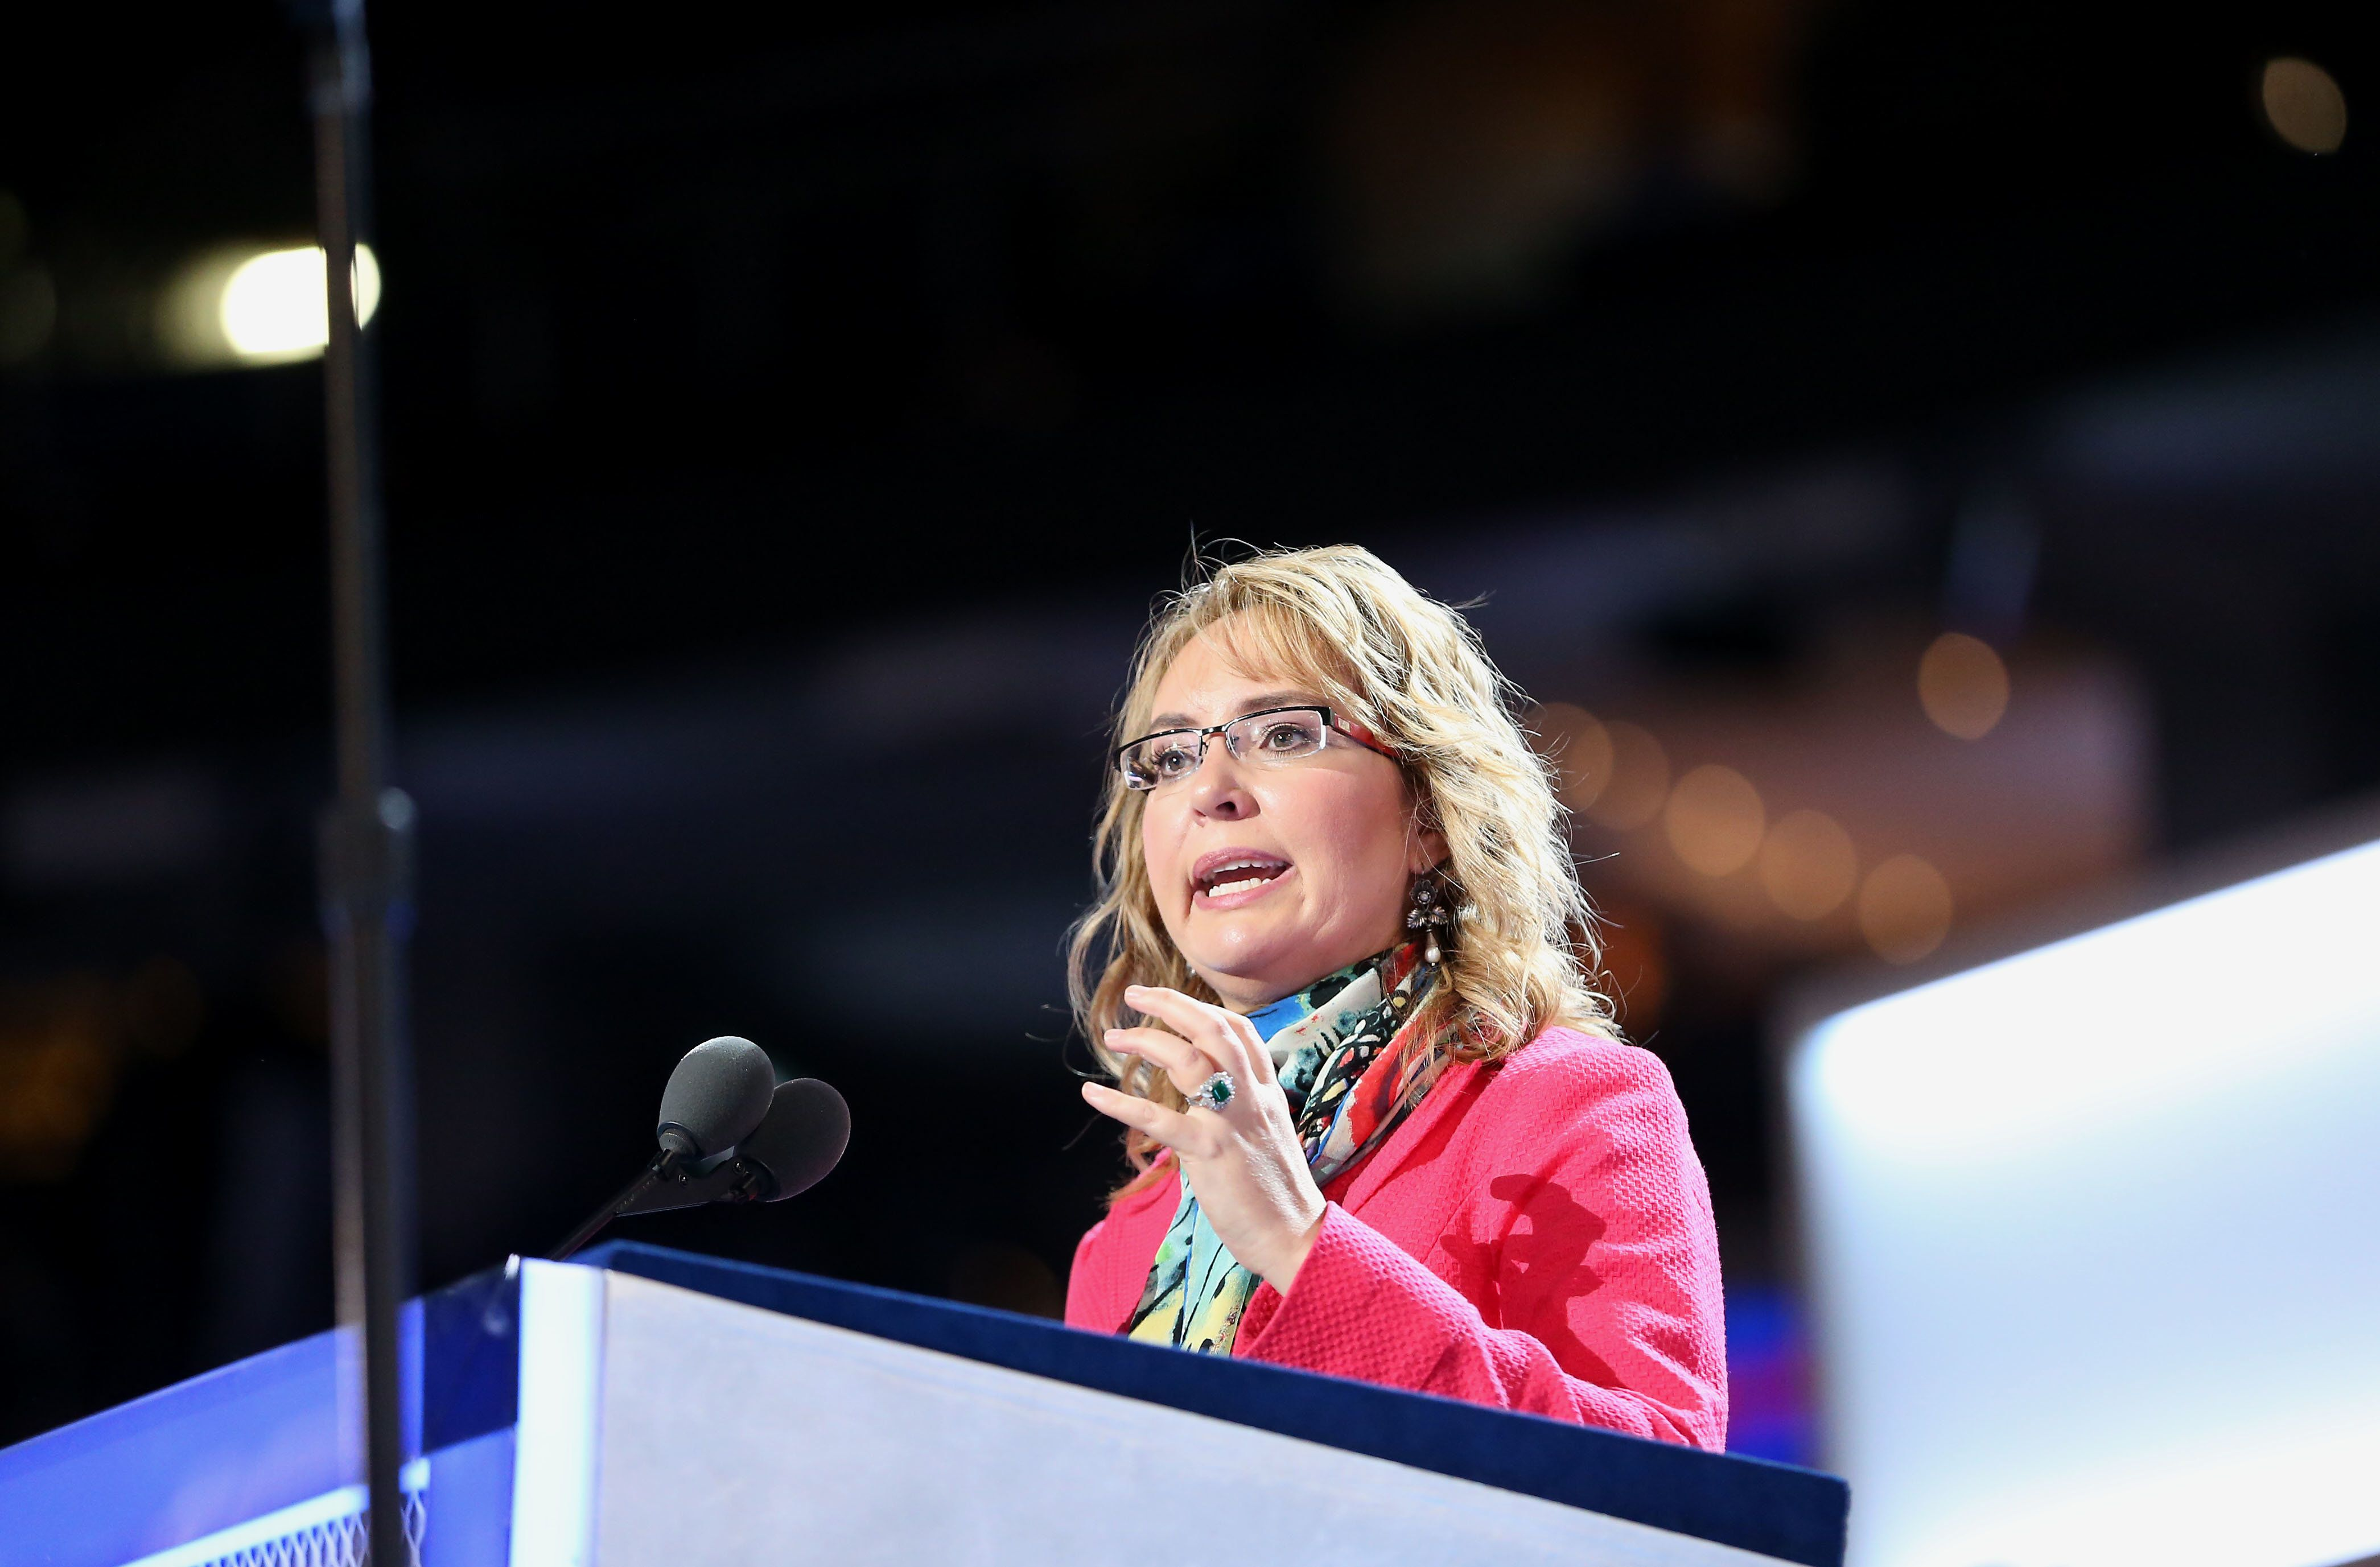 Gabrielle 'Gabby' Giffords, former U.S. Representative from Arizona, speaks on stage during a walk through before the start of the Democratic National Convention (DNC) in Philadelphia, Pennsylvania, U.S., on Monday, July 25, 2016. The Democratic National Committee gloated as Republicans struggled to project unity during the party's national convention, but they are now facing a similar problem after their leader resigned on the eve of their own gathering. Photographer: Daniel Acker/Bloomberg via Getty Images